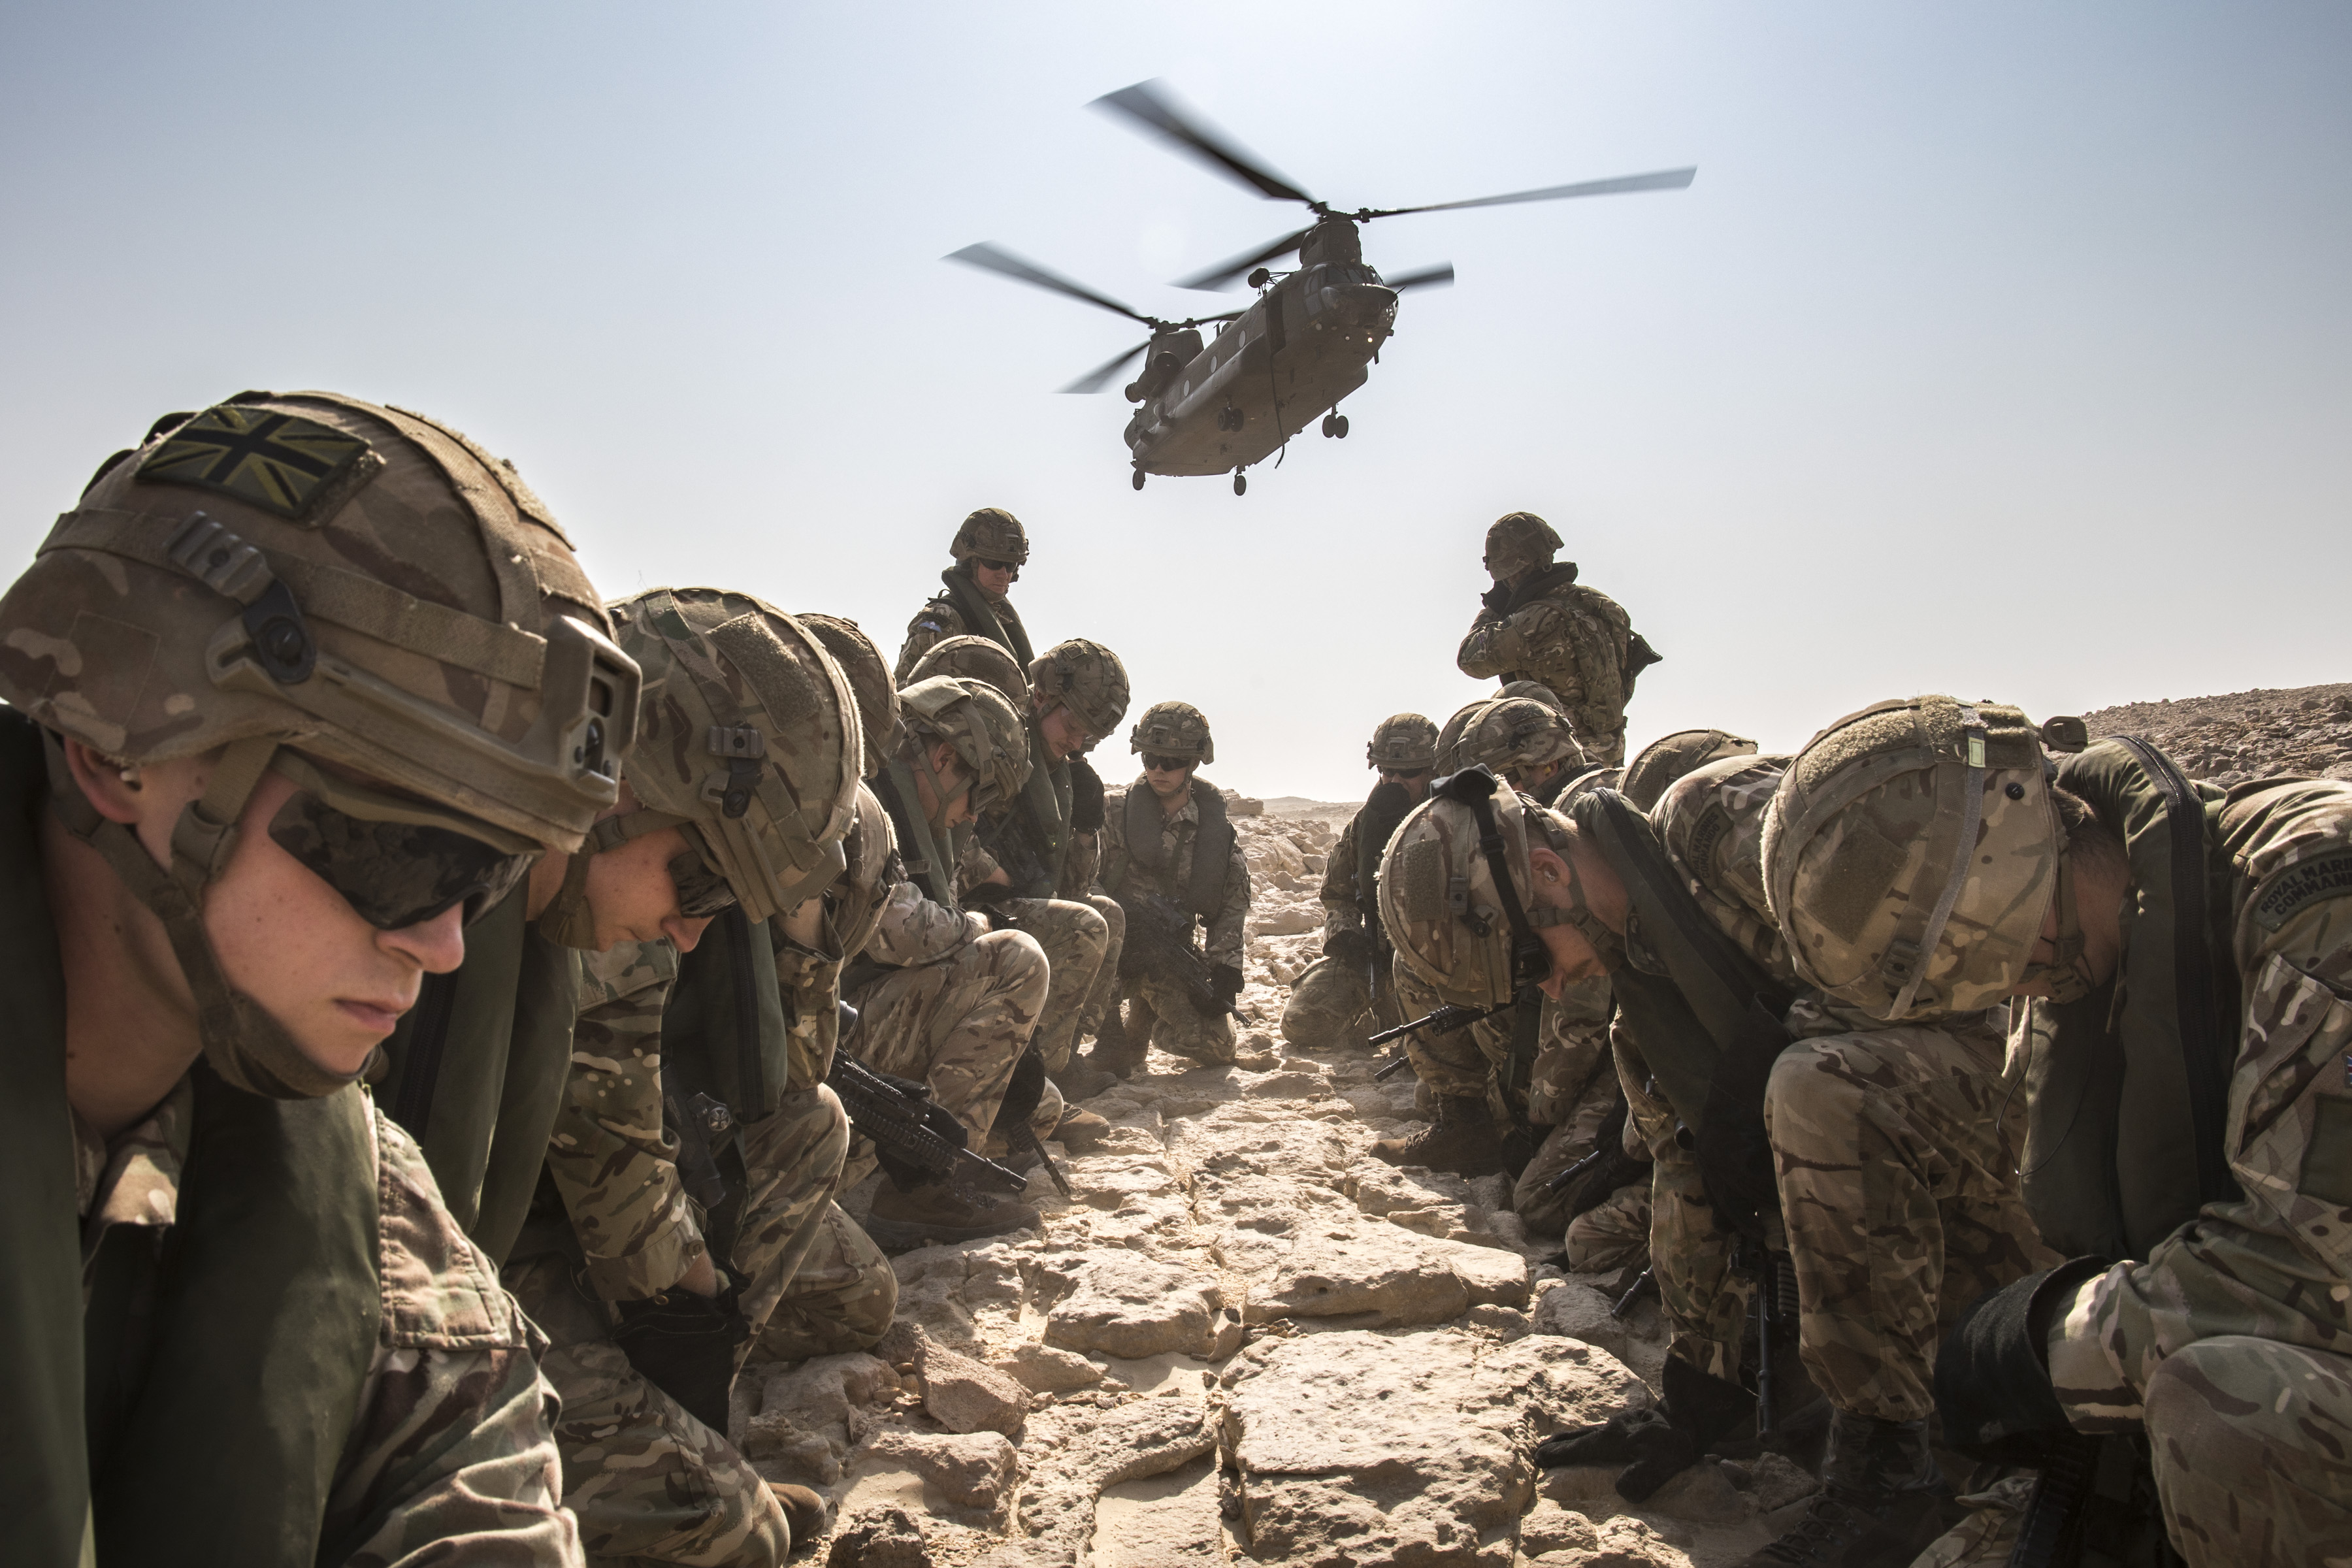 Chinooks from 27 Squadron RAF Odiham have fast roped Royal Marines from 40 Commando into a beach assault during the final fire power demonstration on Exercise Saif Sareea 3 in Oman. Royal Air Force Chinook helicopters of No. 27 Squadron, from Royal Air Force Odiham, have been participating on Exercise Saif Sareea 3 in Oman. Aircrew, Engineers and support staff from the Squadron have been working from both Royal Air Force of Oman (RAFO) Musannah in the north of the country, and Duqm International Airport in the south of the country, in a bilateral training exercise that see's over 5,000 UK personnel train alongside over 60,000 troops from The Sultan of Oman's Armed Forces. During the exercise the aircraft have been training in a variety of roles, moving 40 Commando Royal Marines and Omani troops, as well as deck landings on the Royal Navy's HMS Albion in the Indian Ocean. 27 Squadron have utilised the exercise to carry out vital environmental training for pilots and aircrew, and the support staff accompanying the aircraft. Exercise Saif Sareea 3 see's personnel from The Royal Navy, British Army and Royal Air Force train alongside The Sultan of Oman's Armed Forces in a bilateral training exercise that tests and develops joint operations between the two nations.